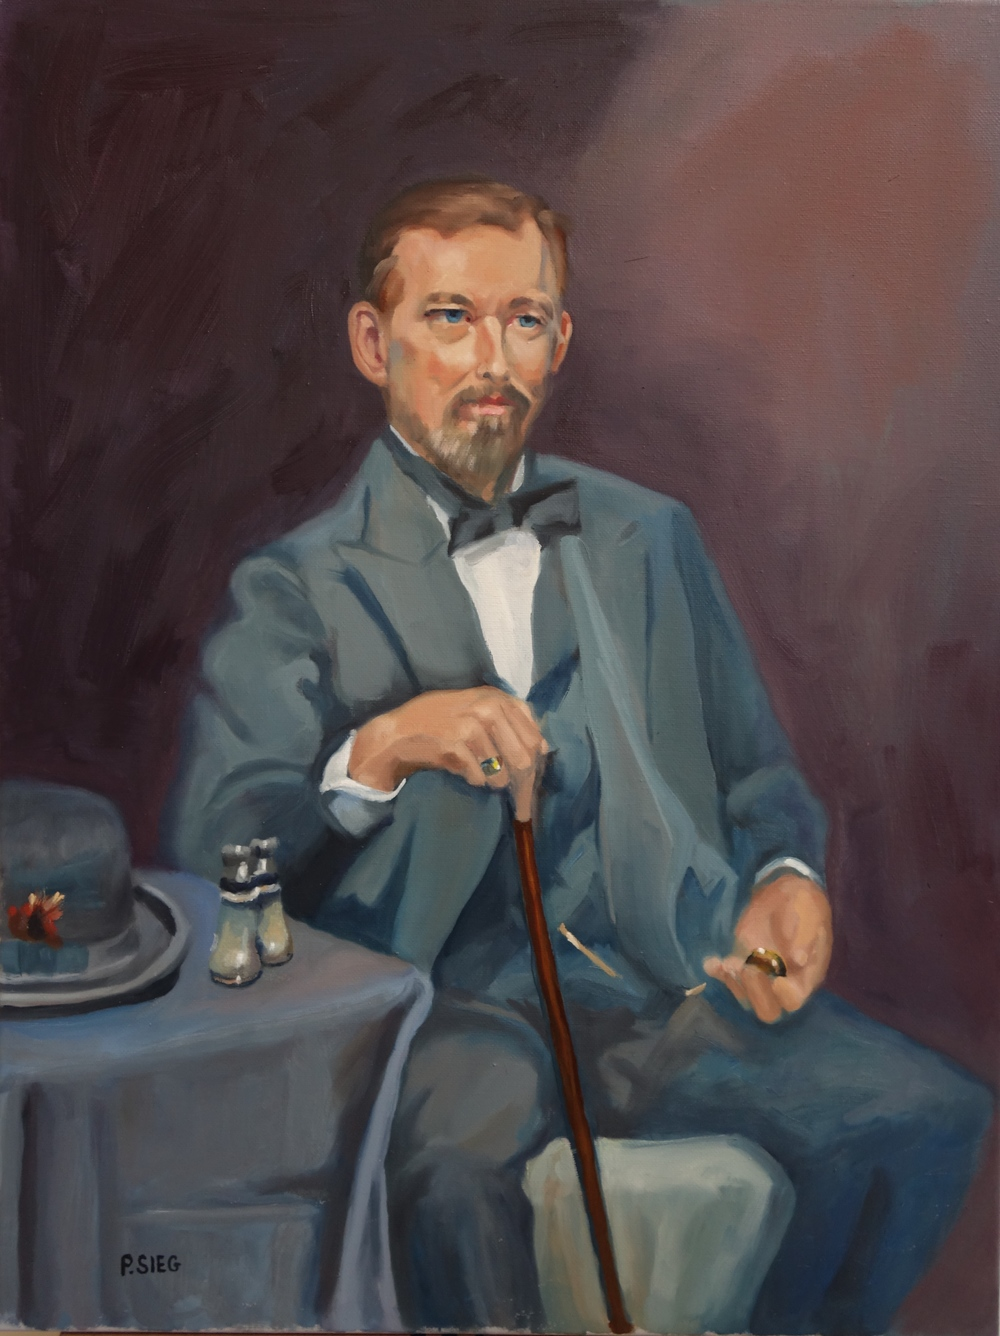 """Blue Eyes, Gray Suit, Walking Stick    18"""" x 24"""", oil on canvas For sale,  contact the artist"""